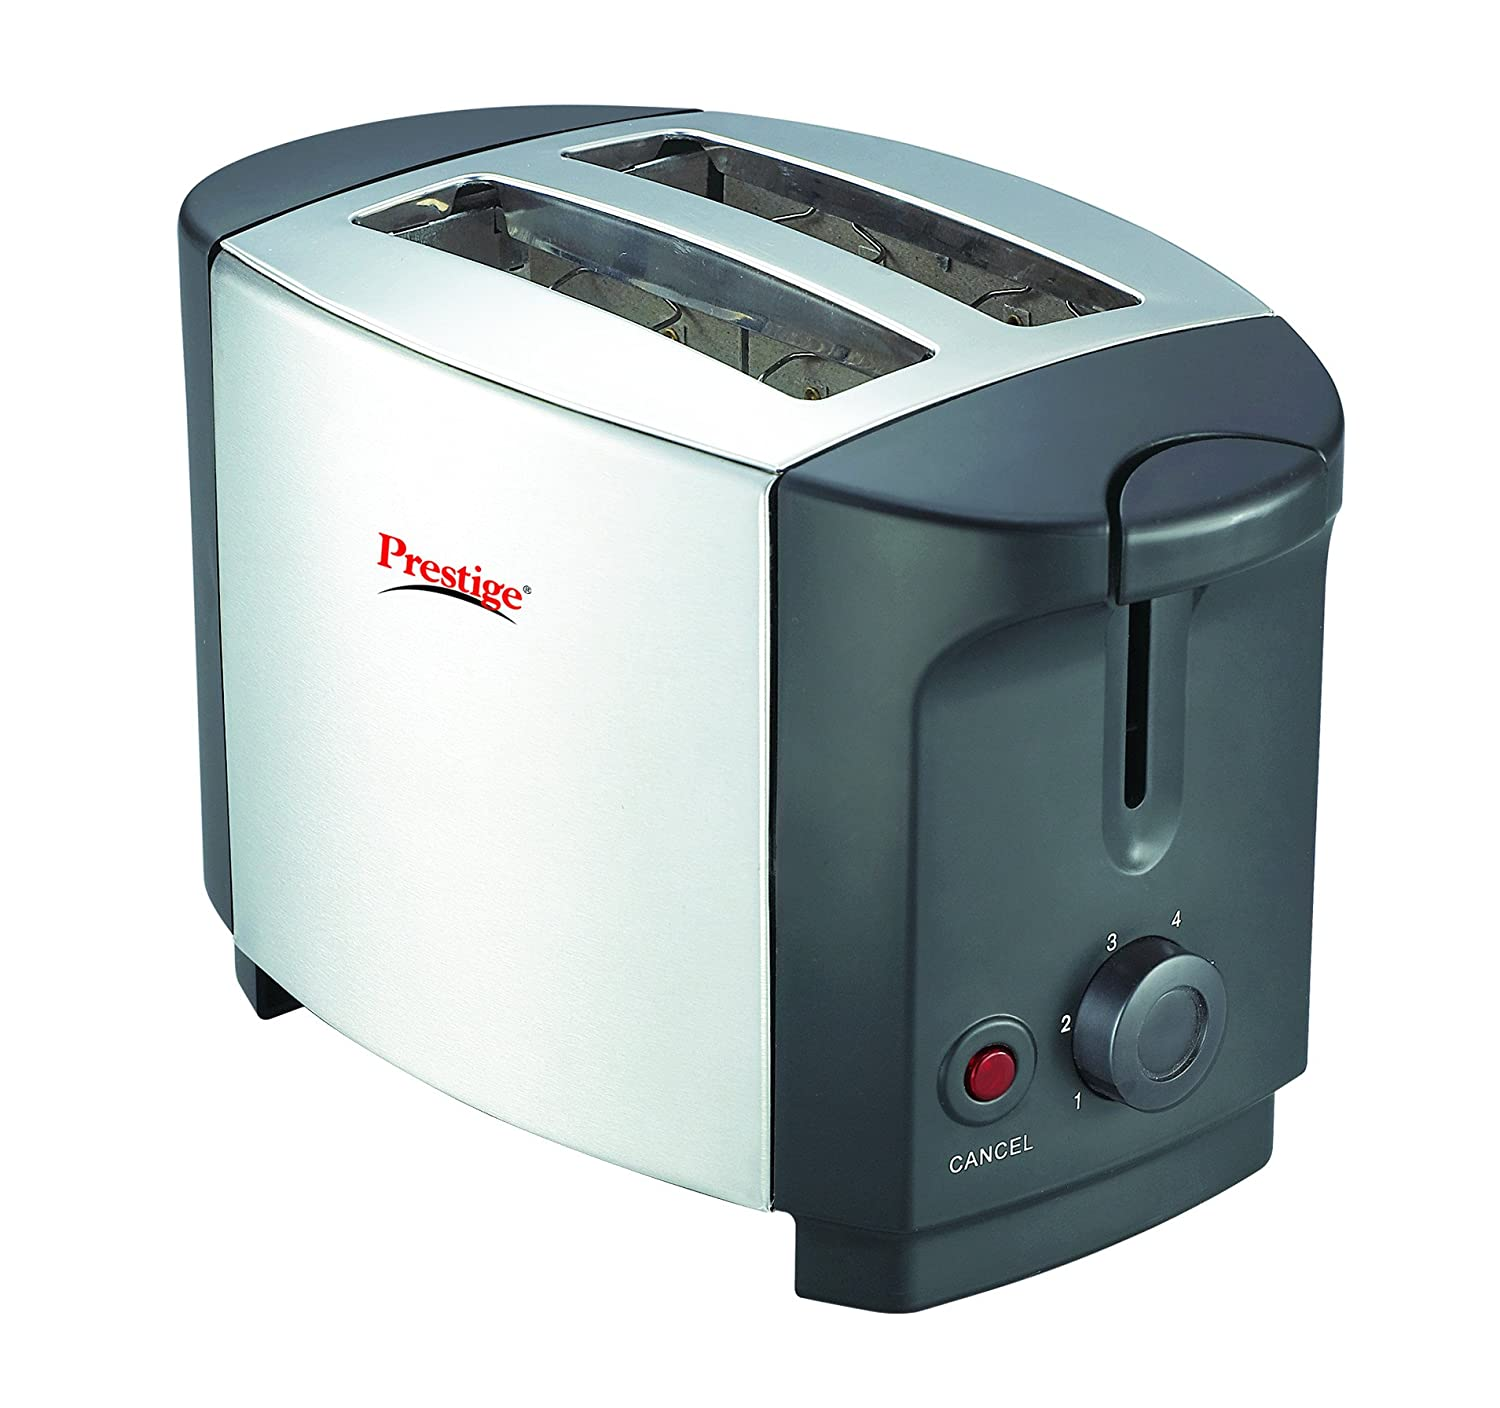 Buy Prestige PPTSKS 750 Watt Pop Up Toaster Silver Black Online At Low Prices In India